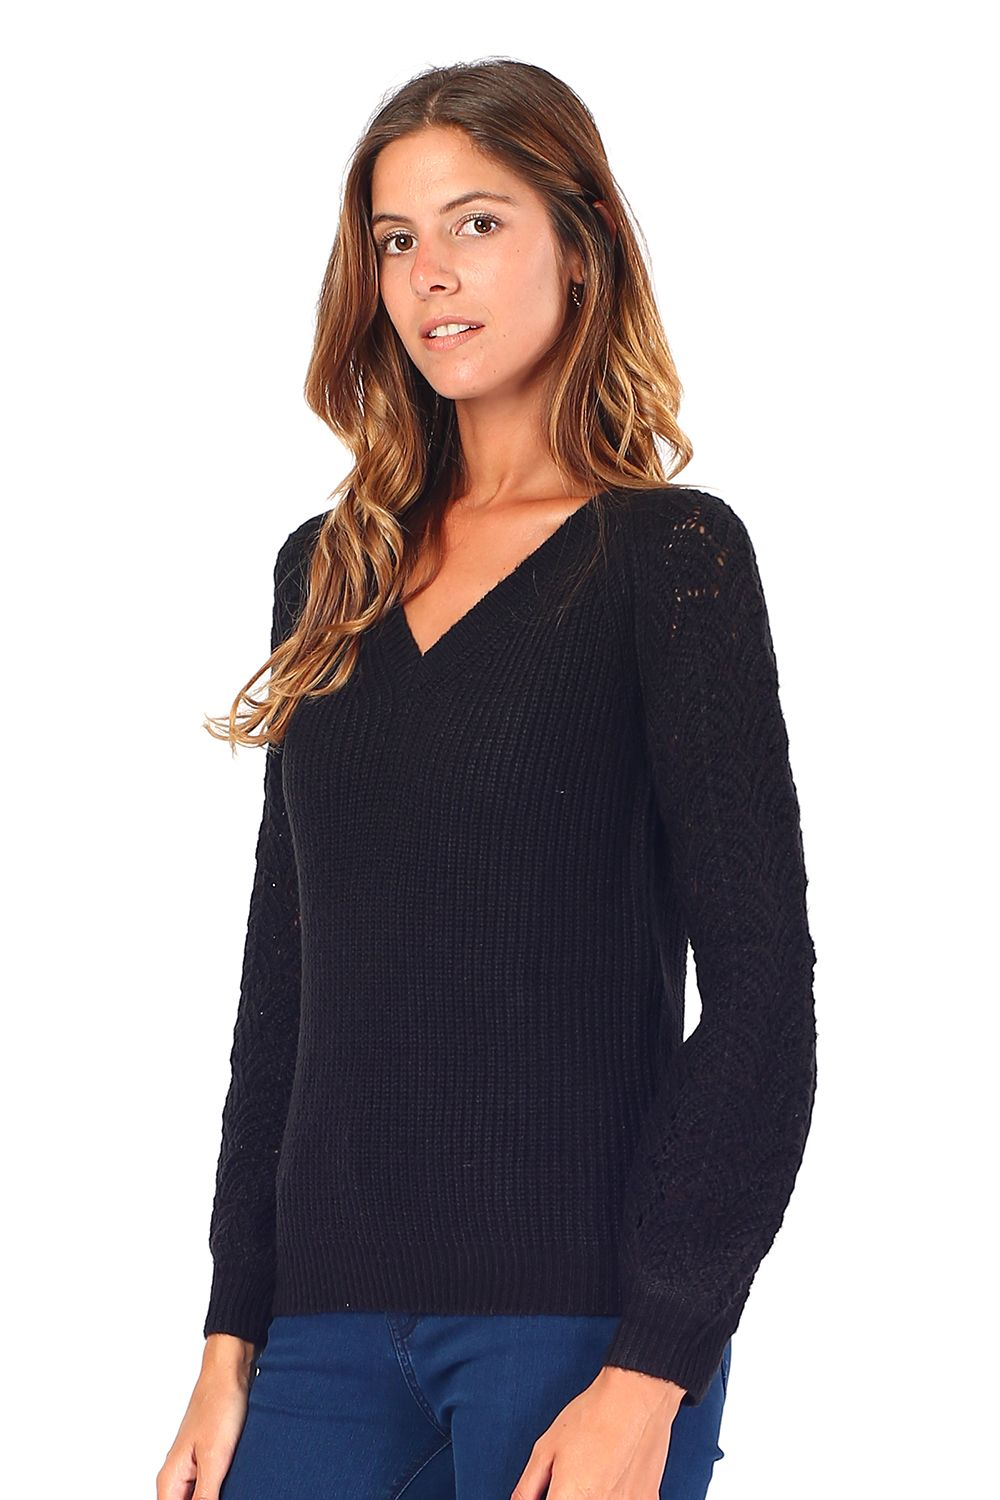 William De Faye V-neck Sweater with Open Stitch-work Sleeves in Black